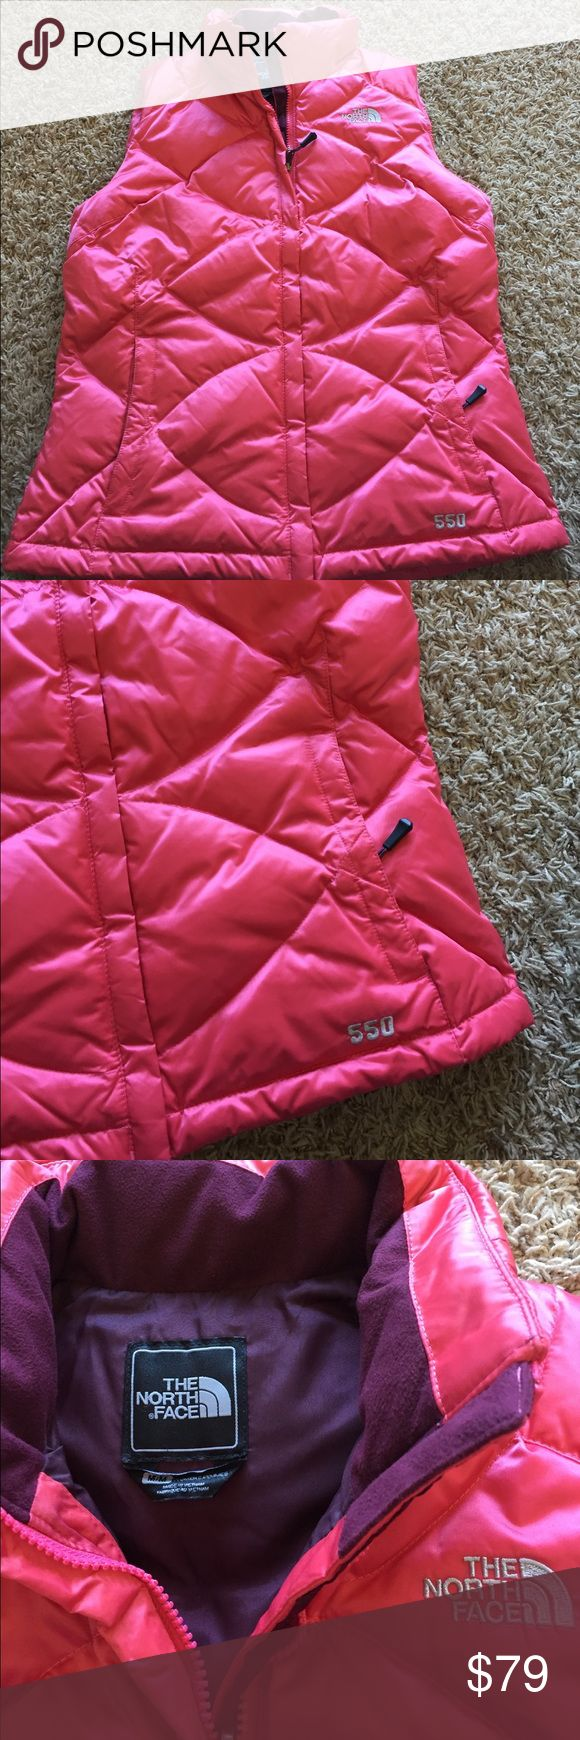 THE NORTH FACE Medium Pink Puffer Vest Bright The north face Pink Puffer Vest- great condition! Thanks for shopping🌺 The North Face Jackets & Coats Vests